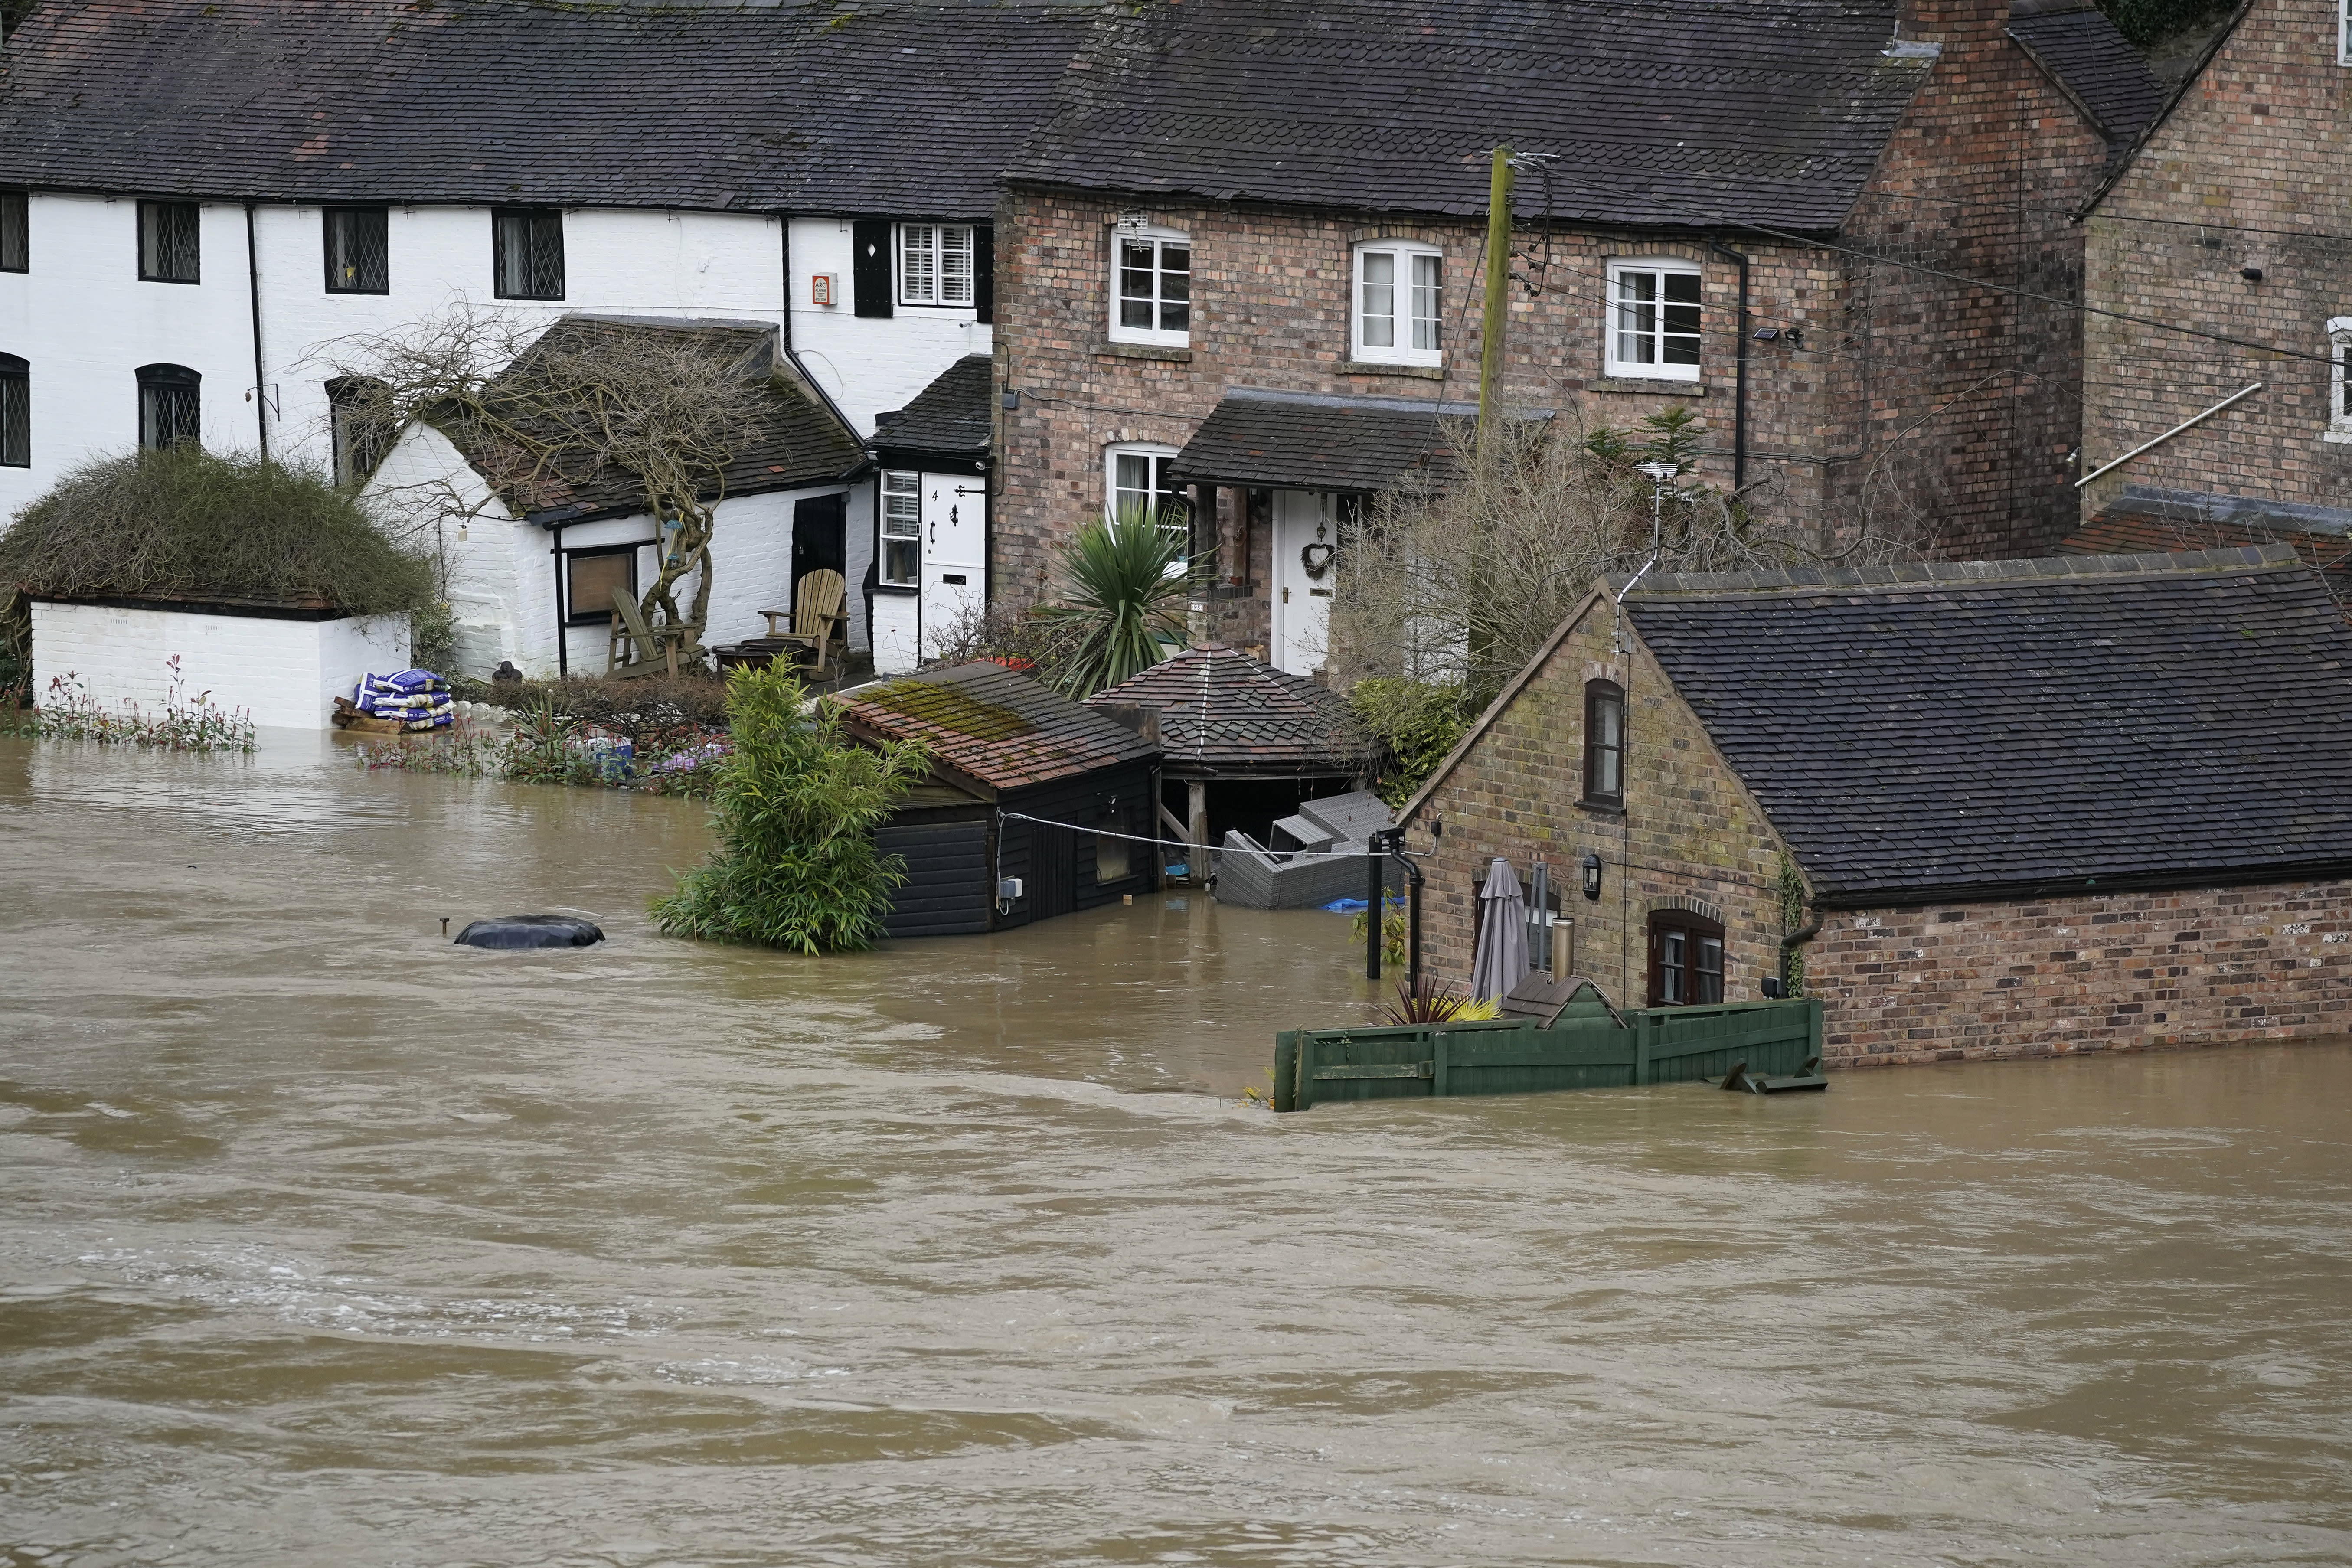 IRONBRIDGE, - FEBRUARY 18: Homes are flooded on the banks of the River Seven following Storm Dennis on February 18, 2020 in Ironbridge, England. Storm Dennis is the second named storm to bring extreme weather in a week and follows in the aftermath of Storm Ciara. Although water is residing in many places flood warnings are still in place. (Photo by Christopher Furlong/Getty Images)